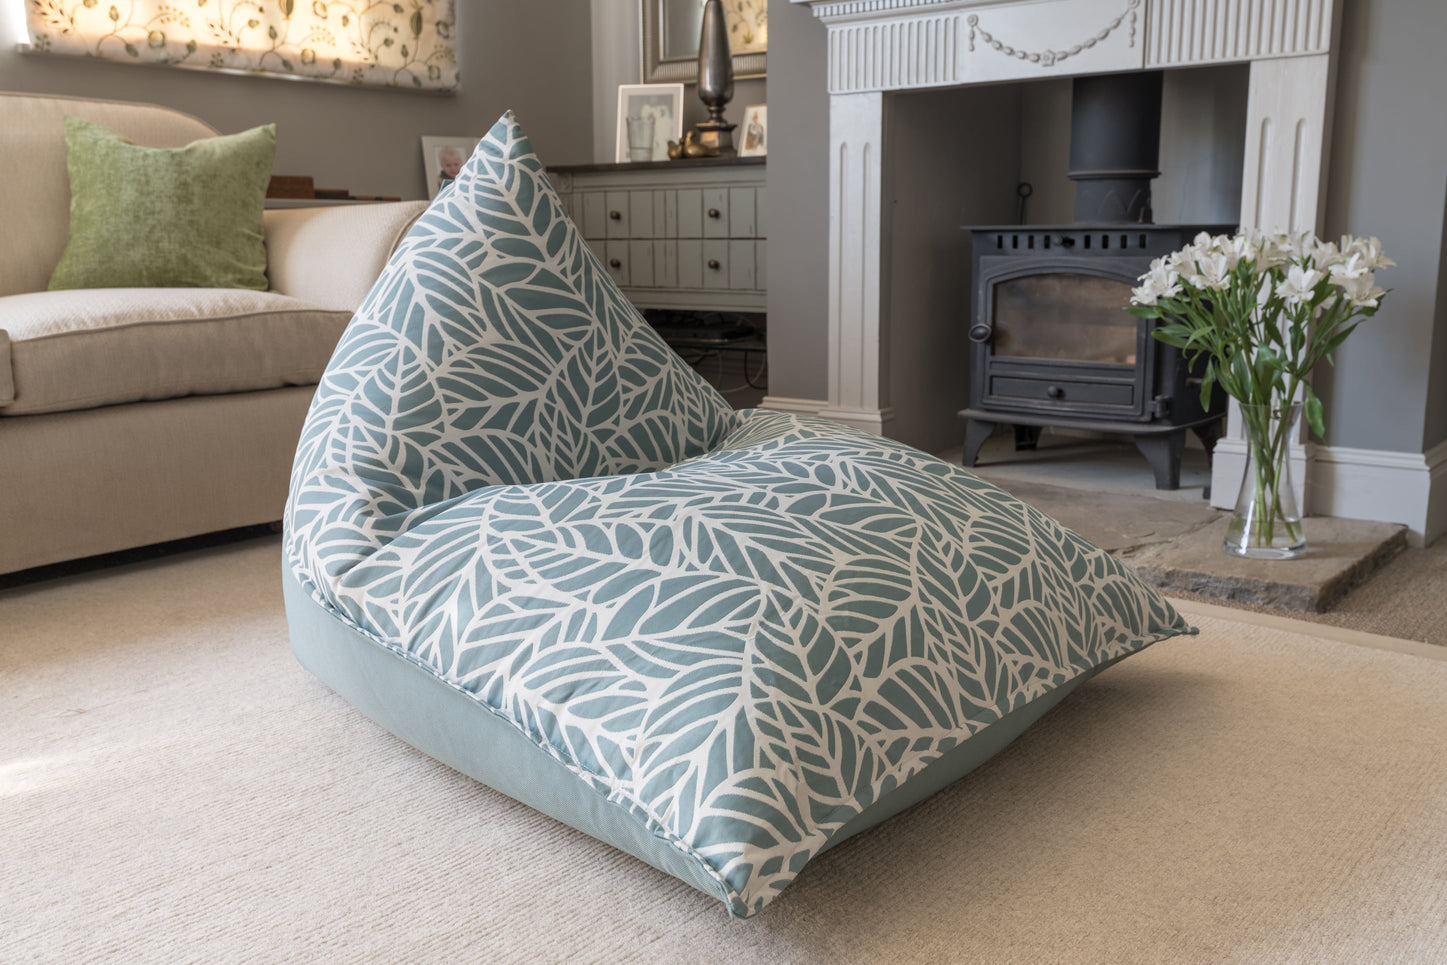 Armadillo Sun Bean Bag Chair in light teal blue and white pattern indoors